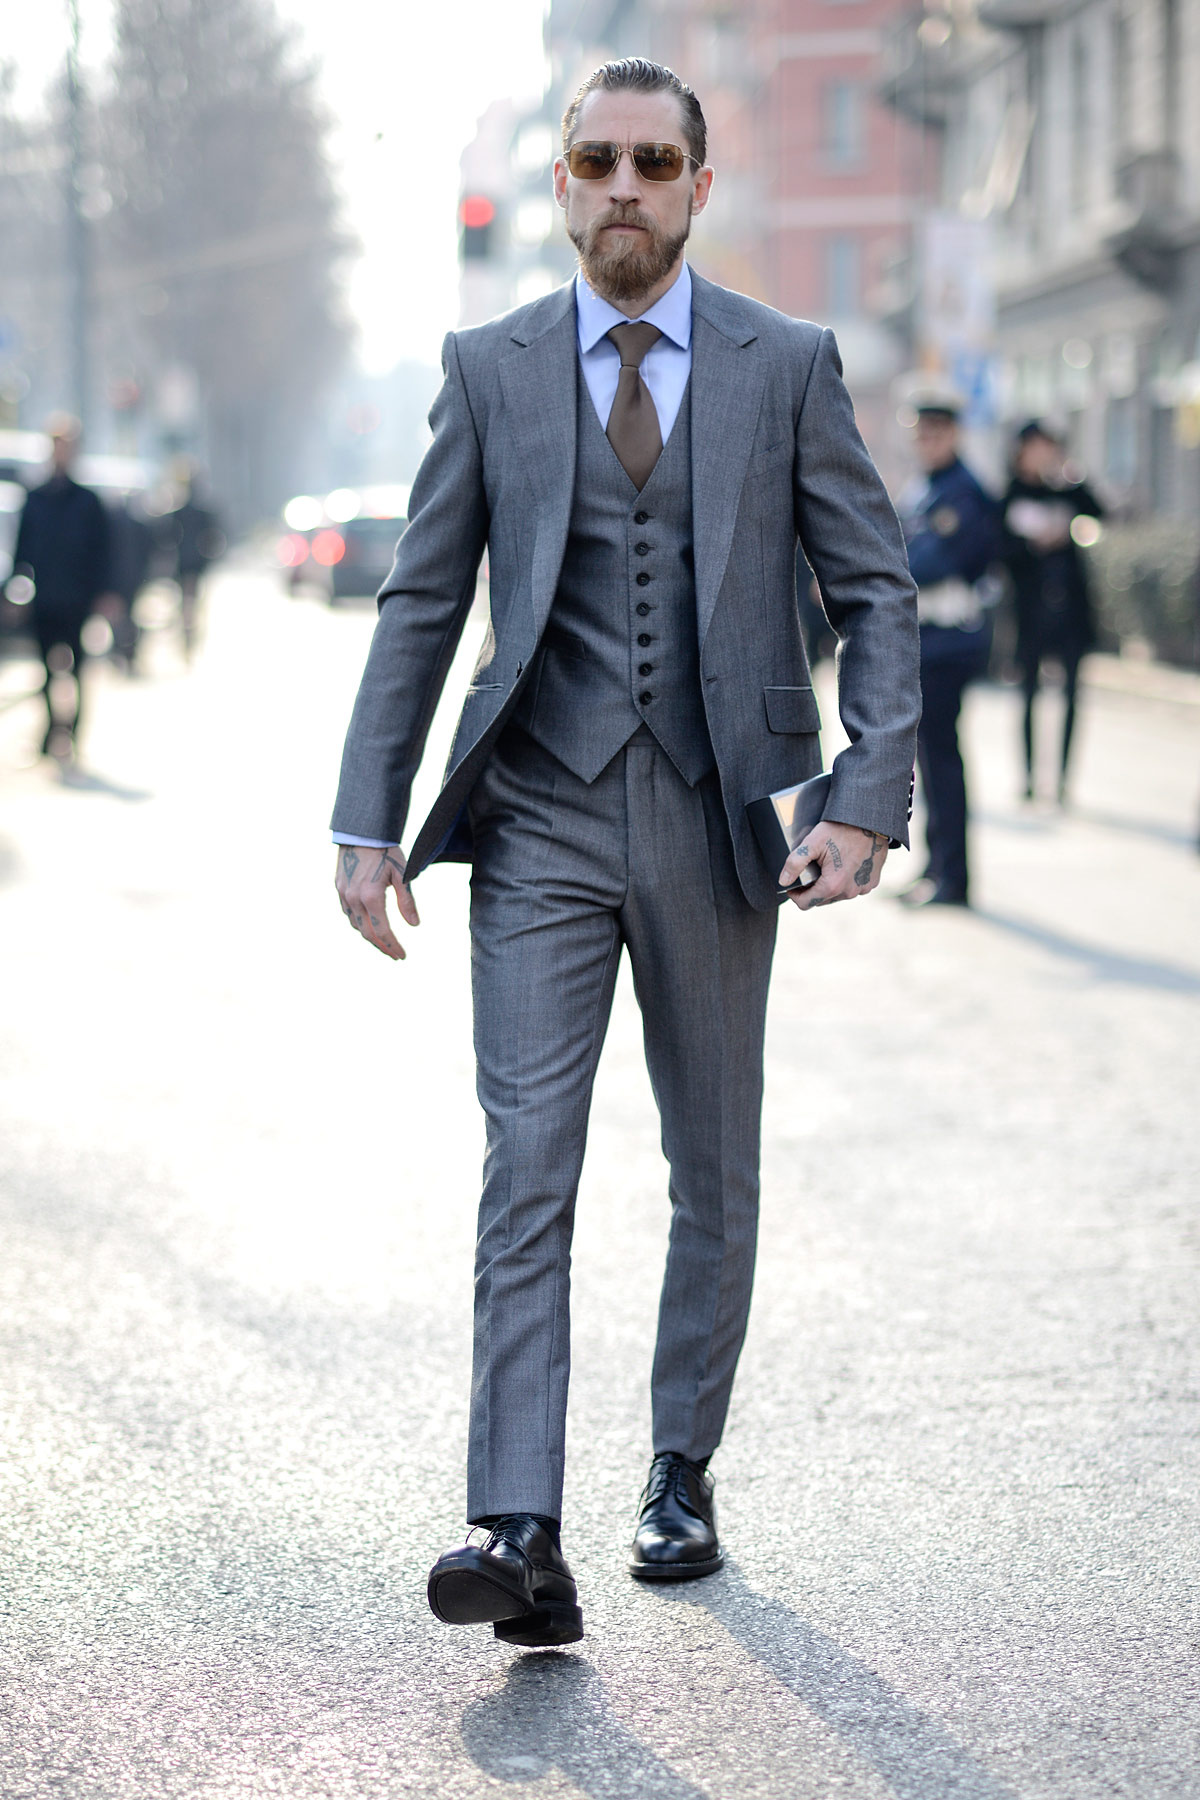 Justin-Oshea-in-grey-menswear-style-streetstyle-milan-fashion-week-suit-gray-glasses